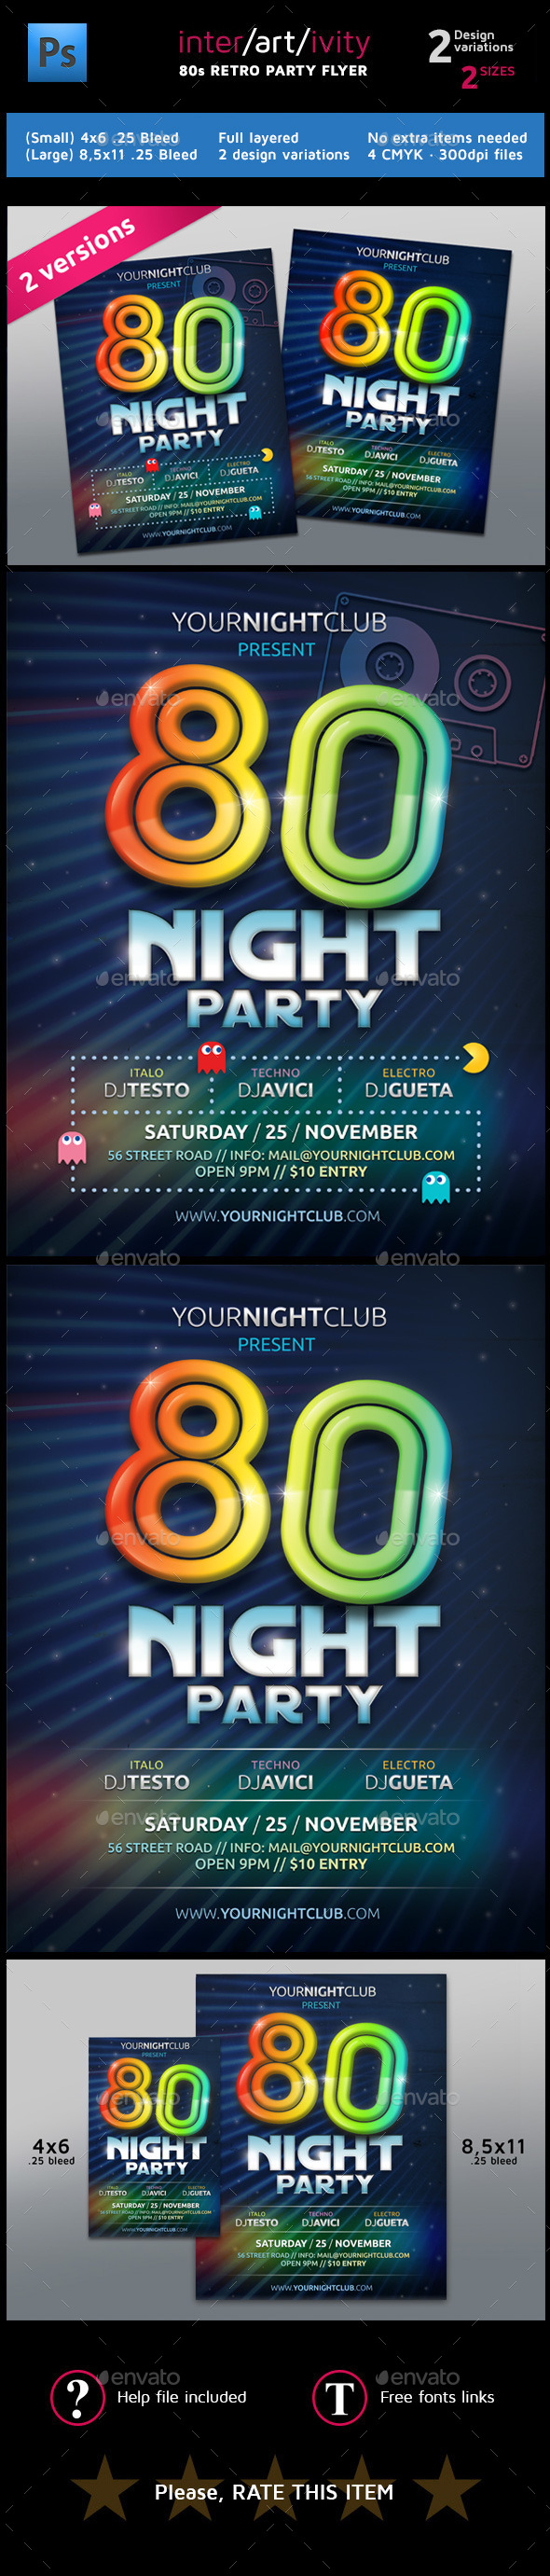 GraphicRiver Eighties Party Night Club Flyer Template 8819095